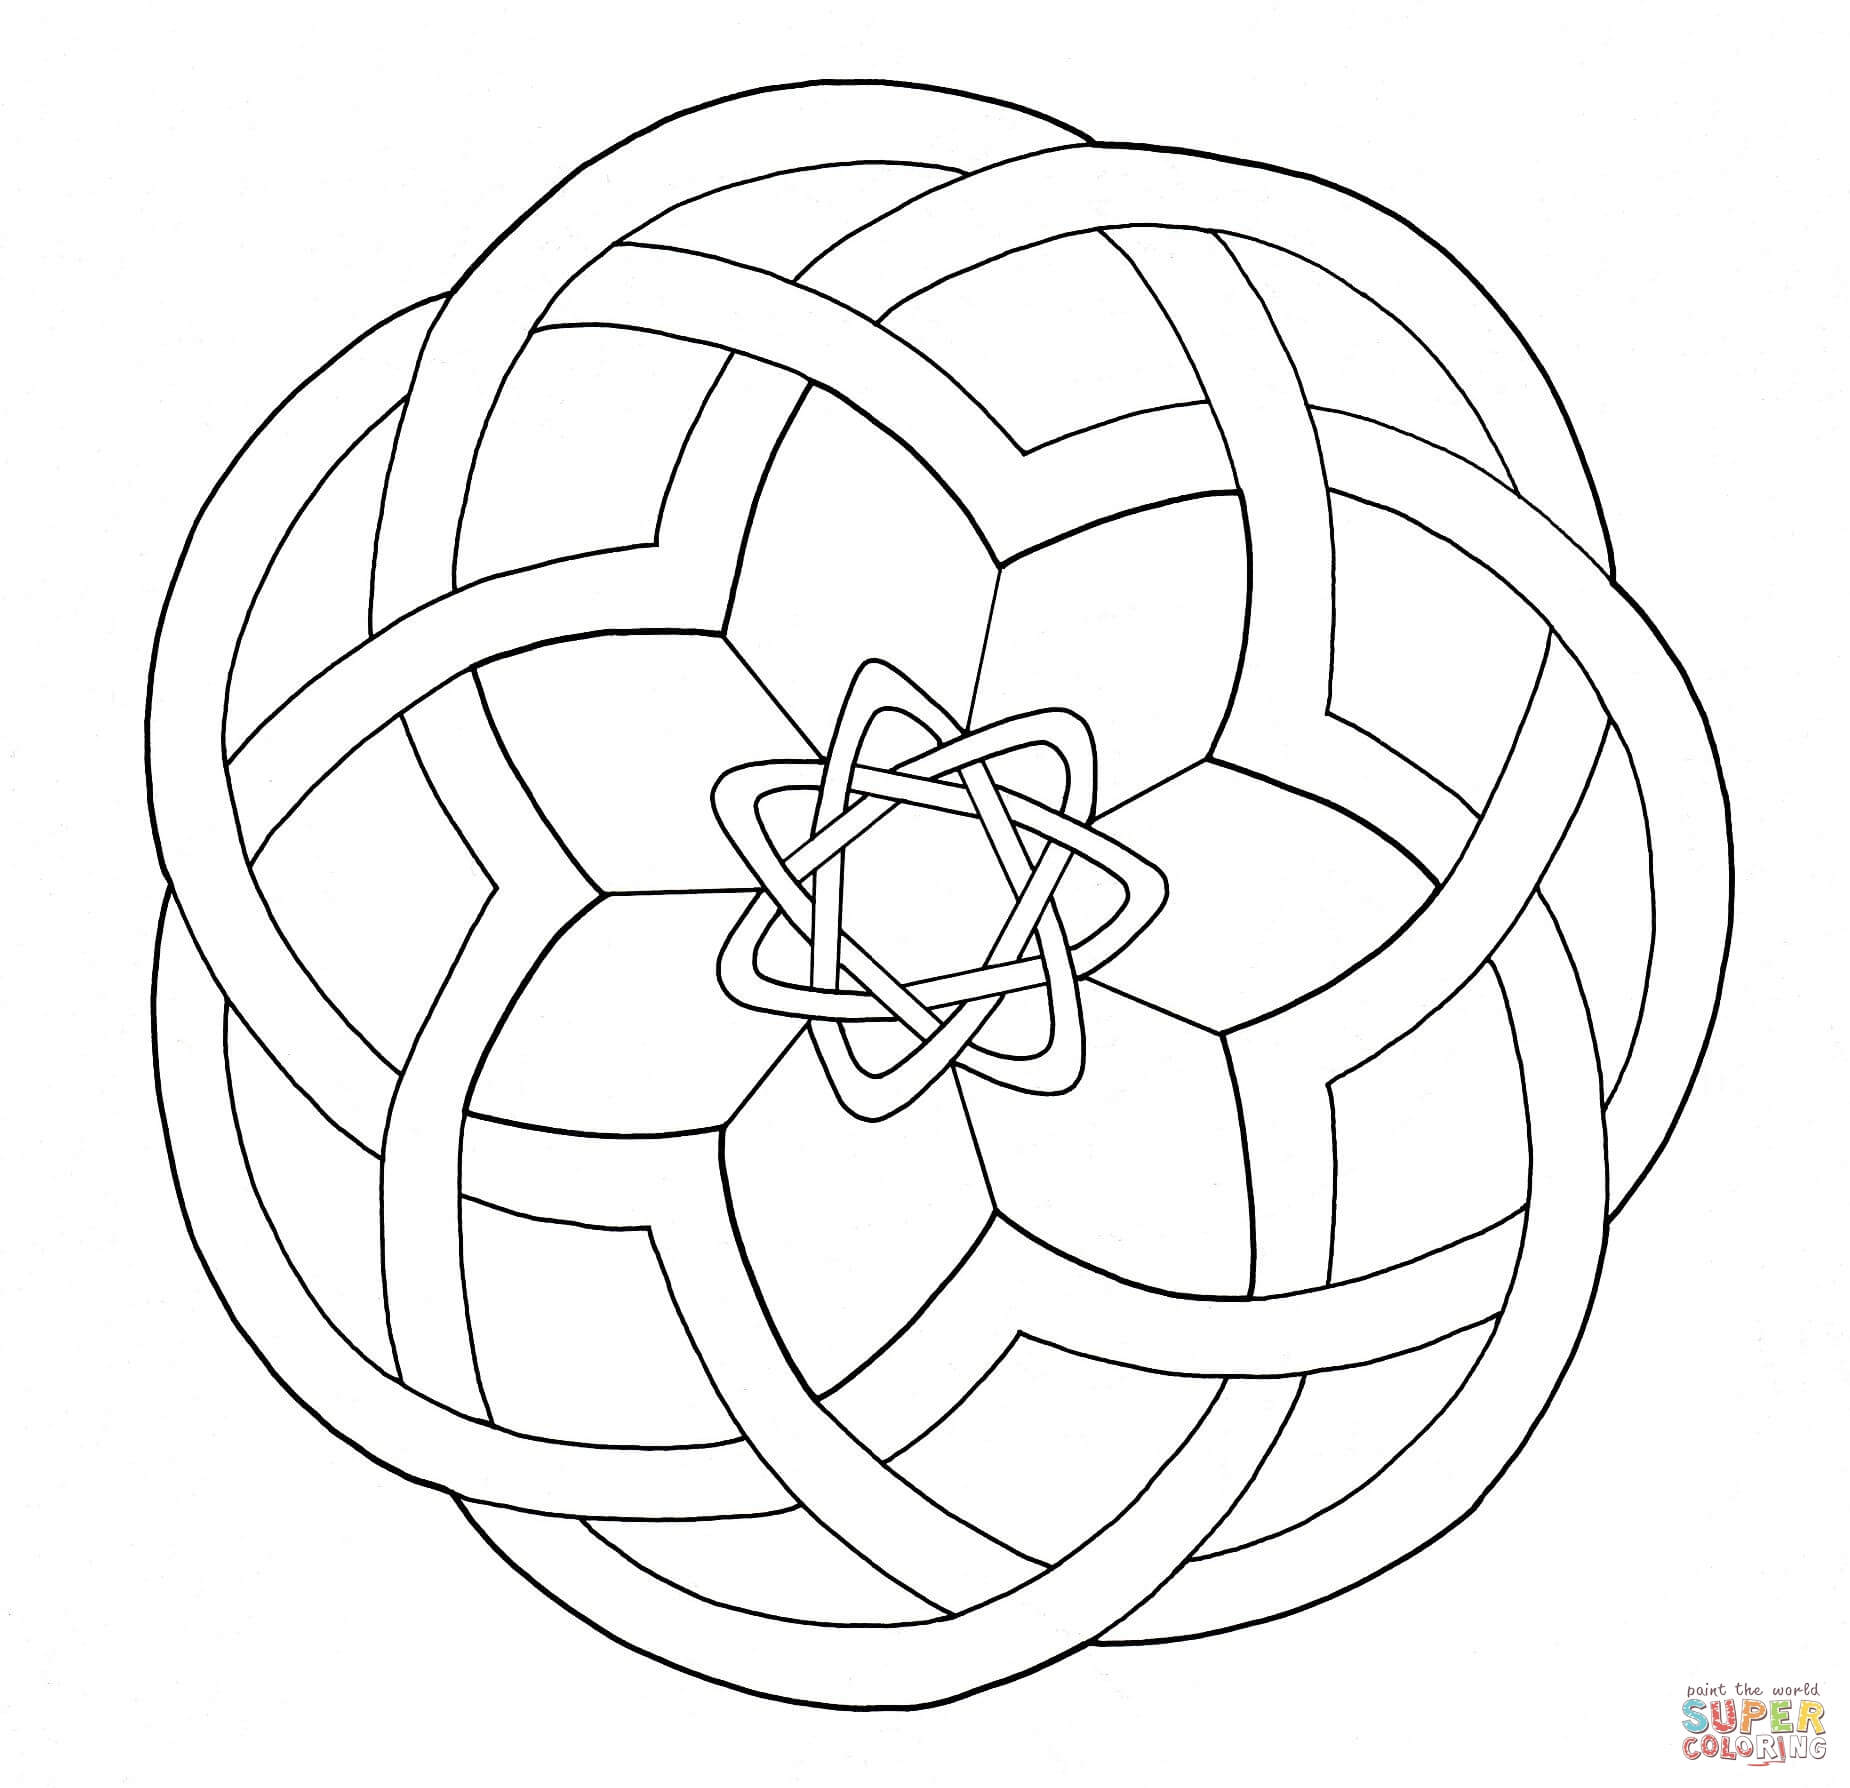 1850x1788 New Design Coloring Pages In Coloring Site With Design Coloring